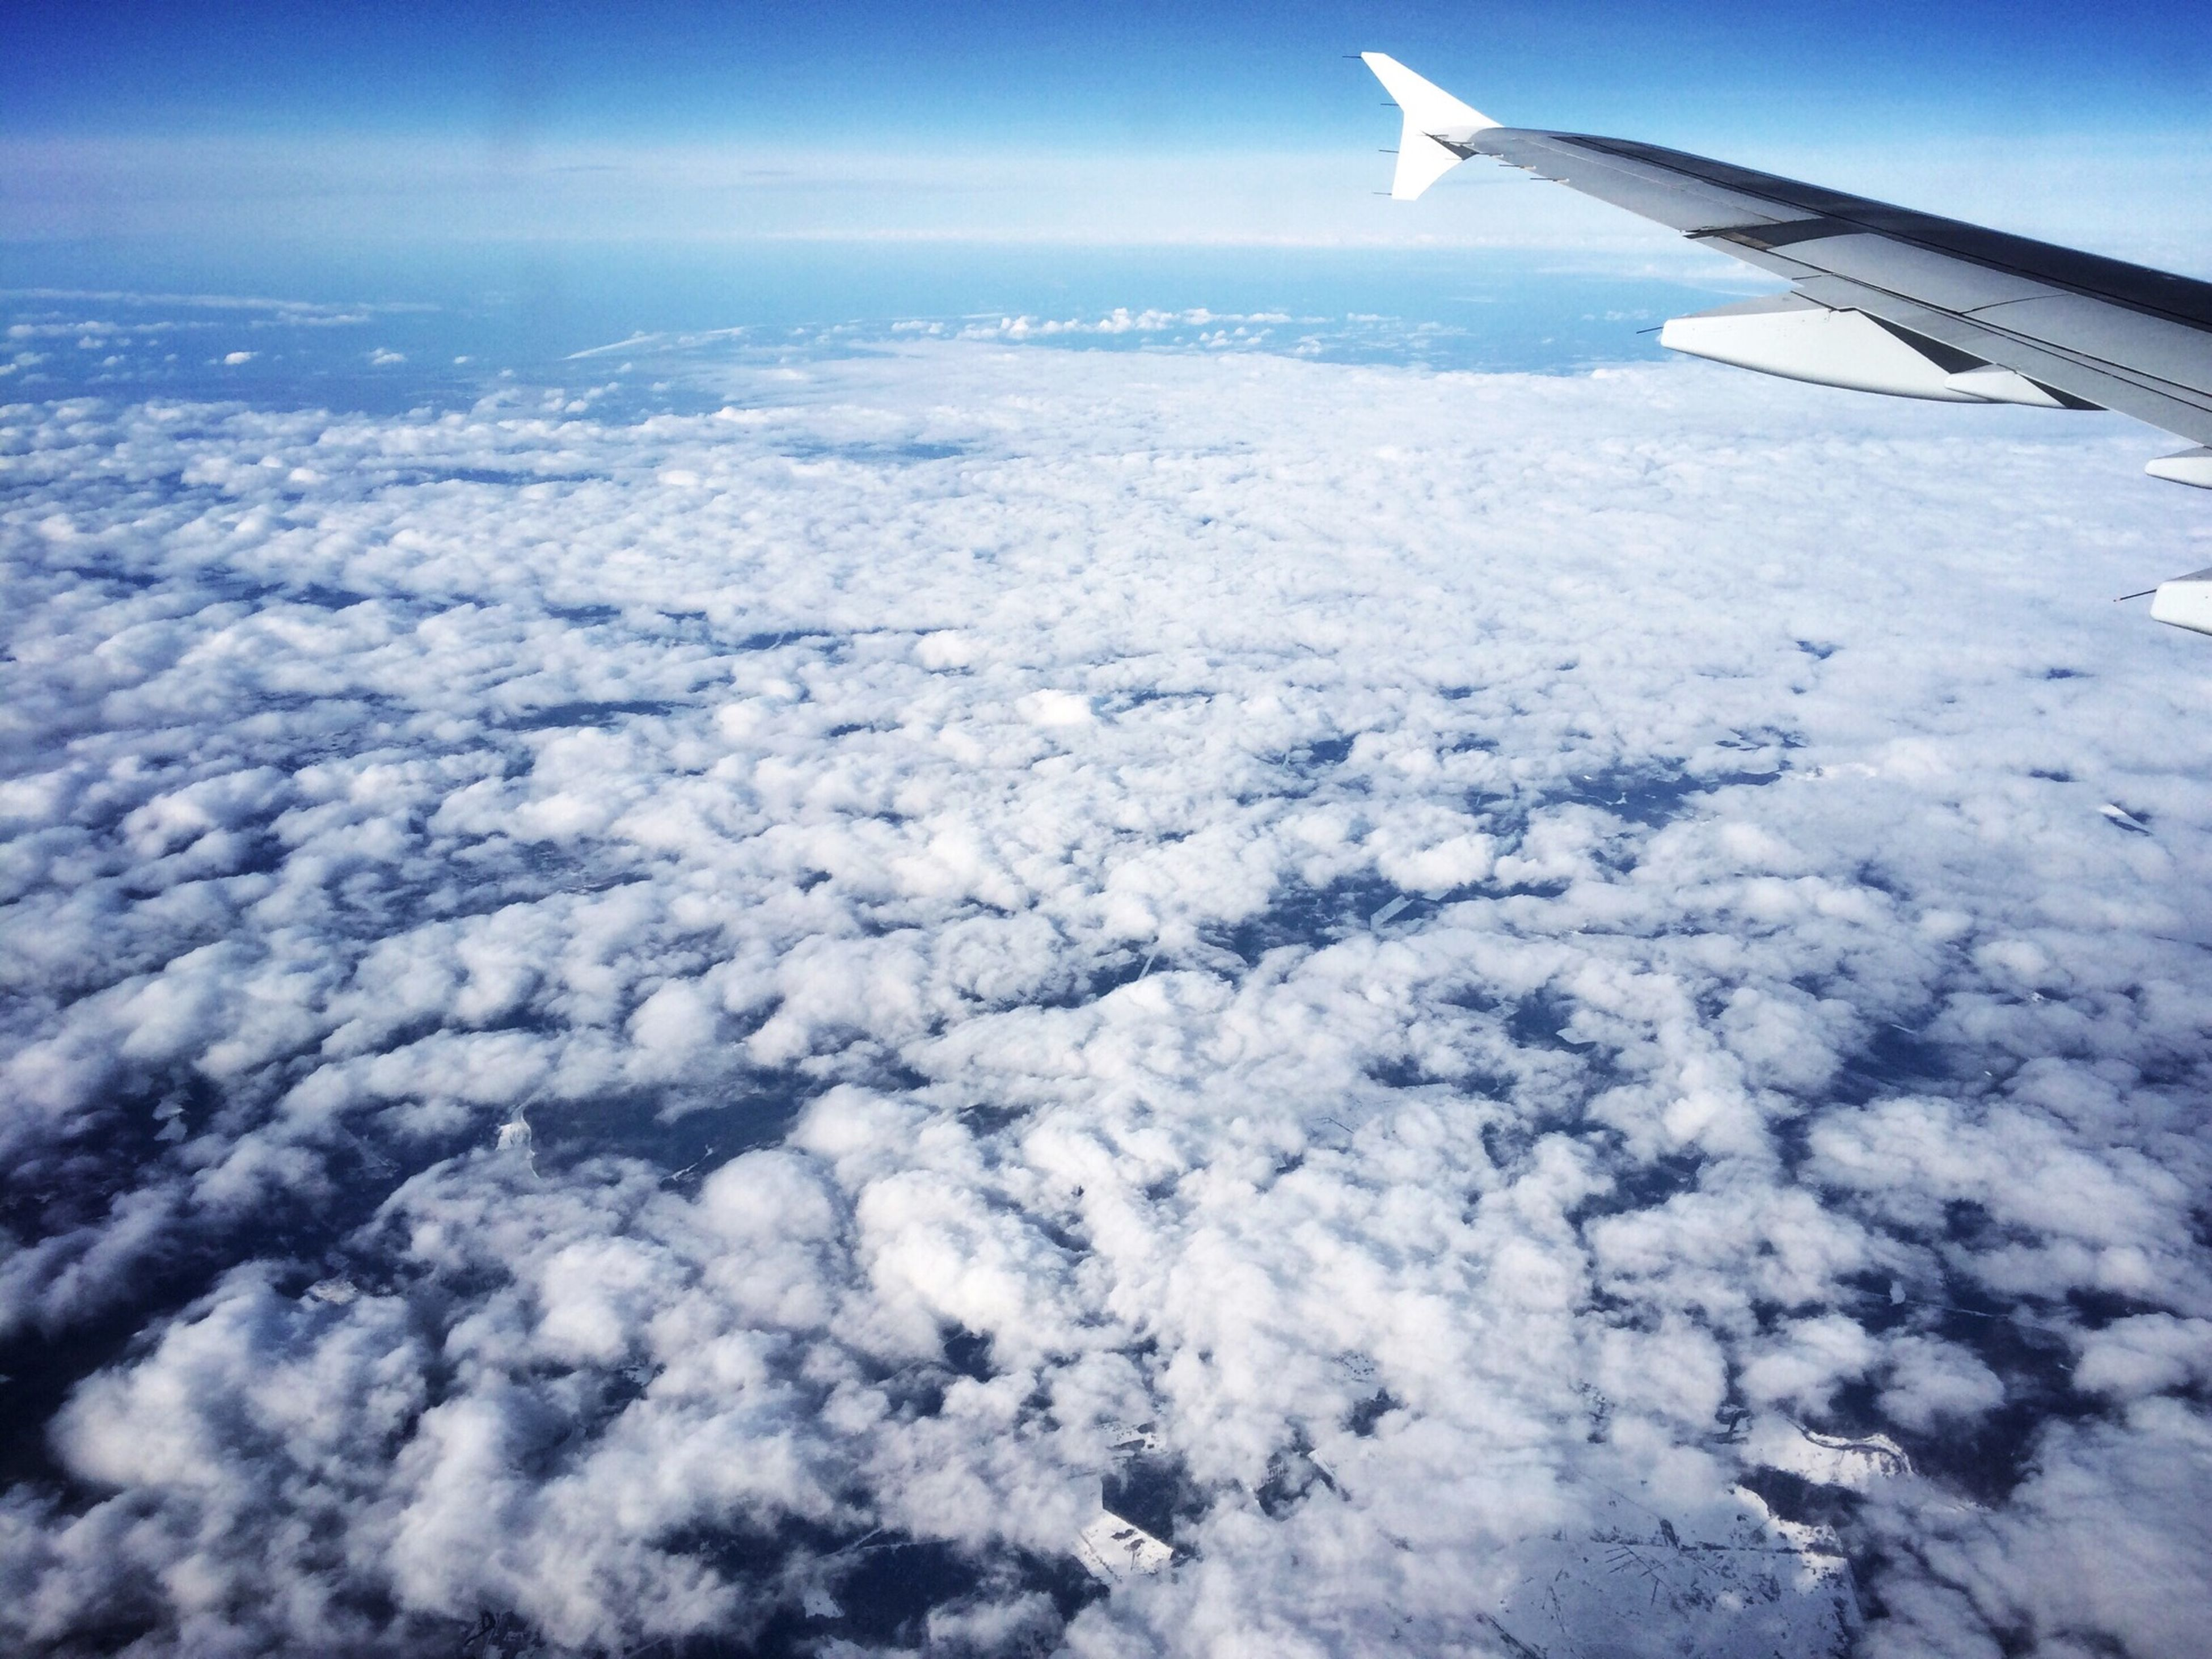 airplane, aircraft wing, snow, air vehicle, landscape, aerial view, flying, transportation, winter, sky, scenics, beauty in nature, cold temperature, nature, blue, tranquil scene, white color, part of, mode of transport, tranquility